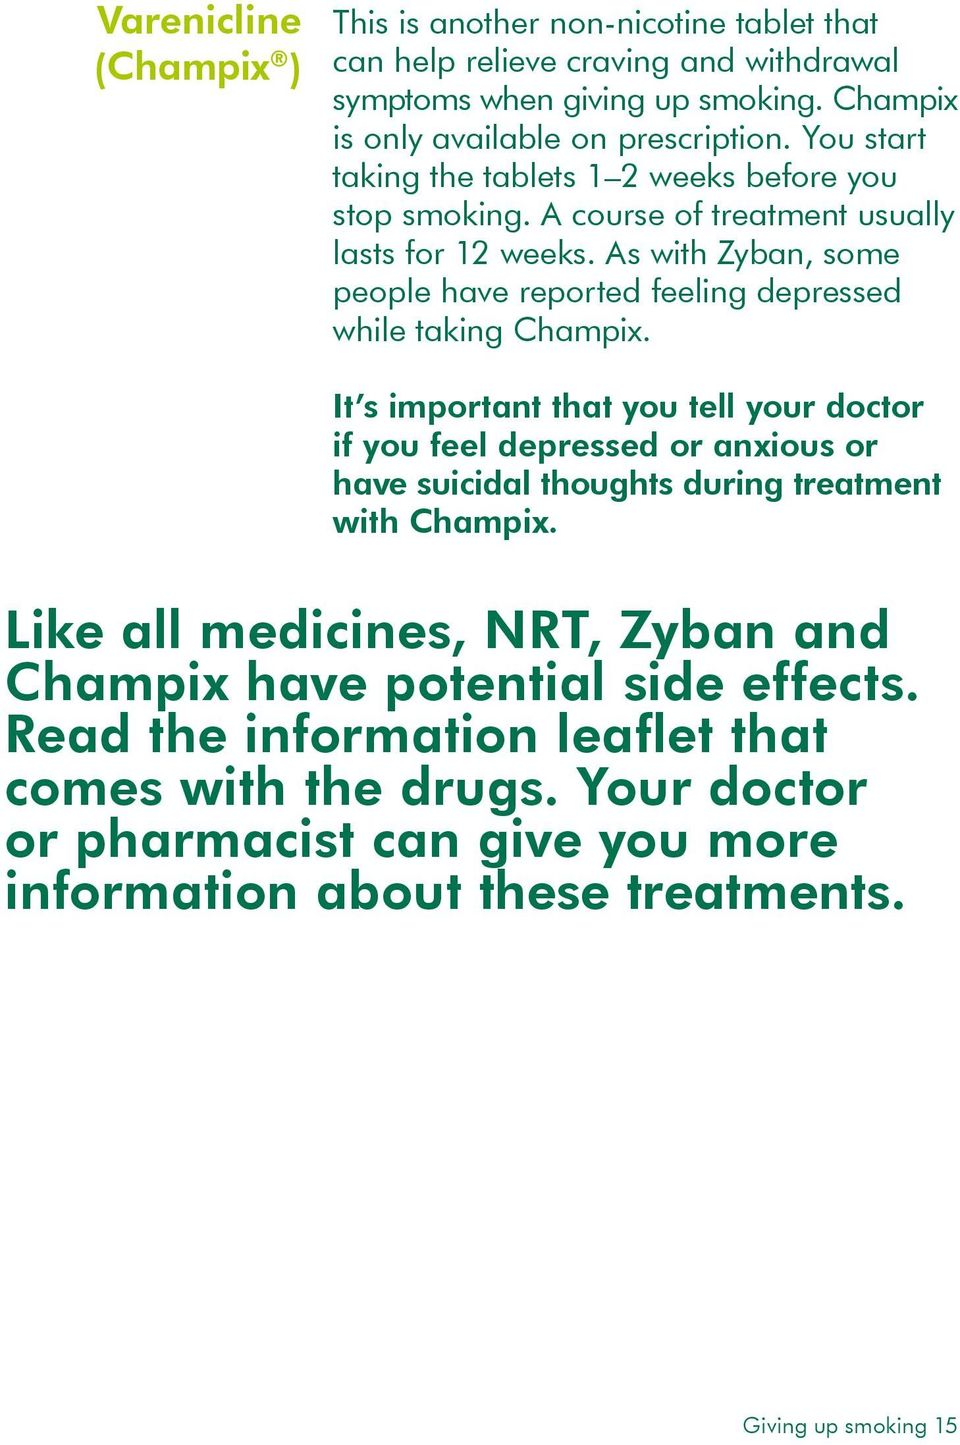 As with Zyban, some people have reported feeling depressed while taking Champix.